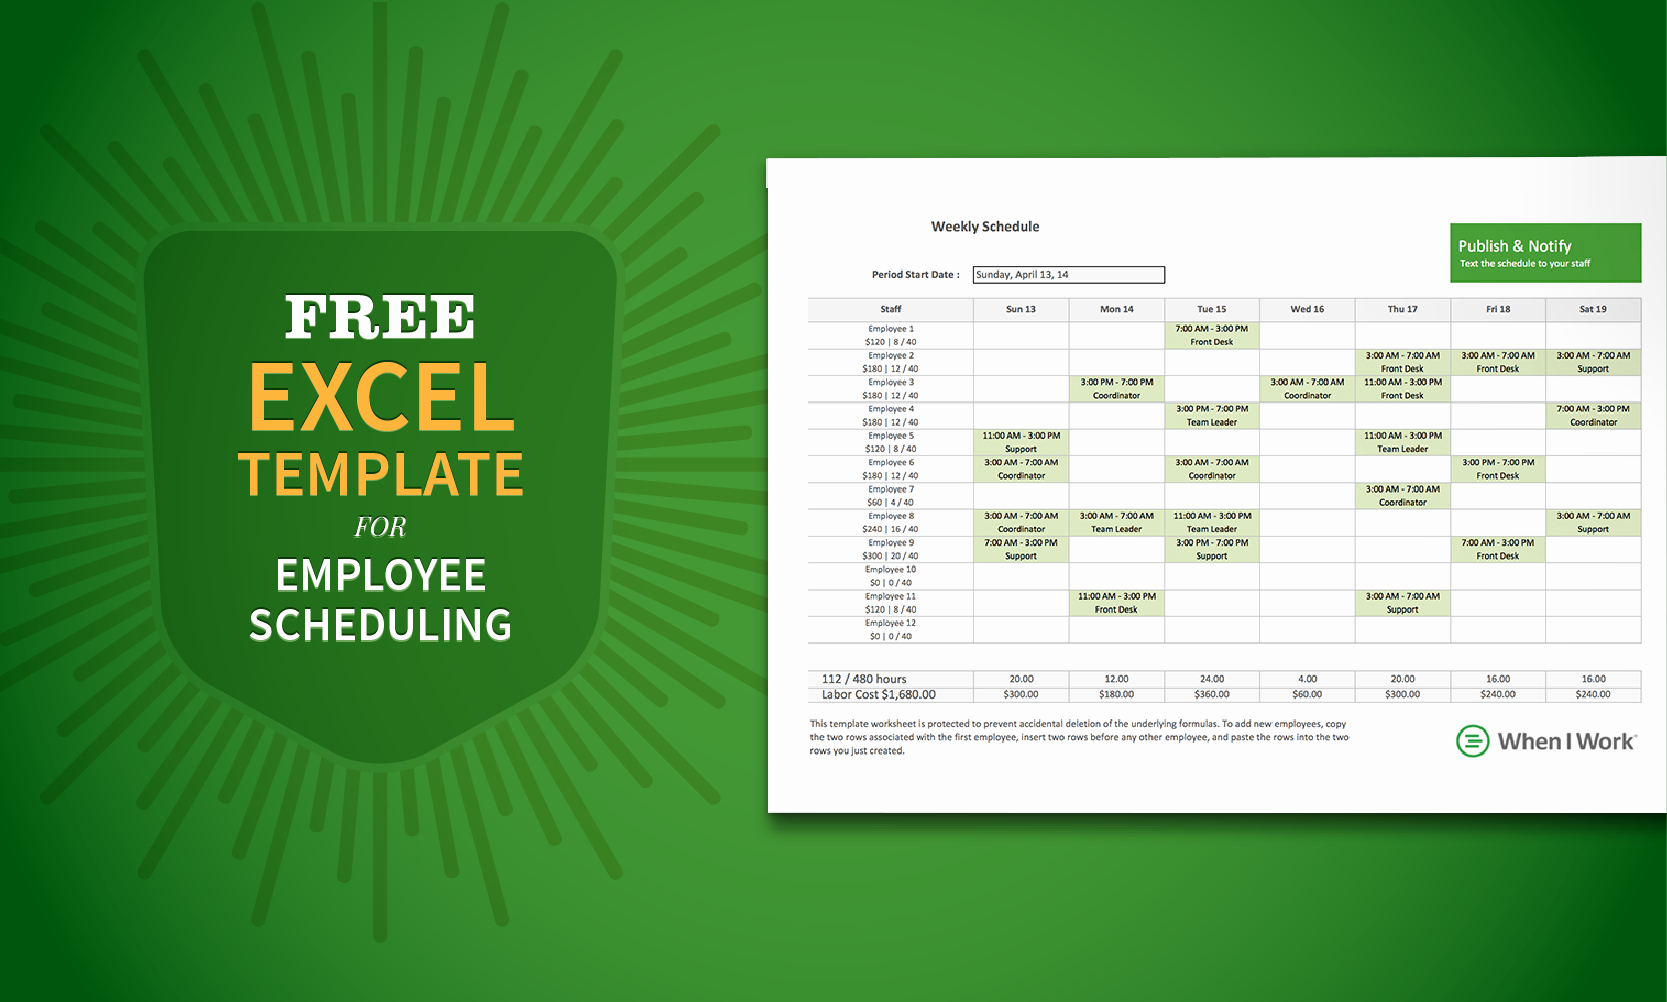 Excel Employee Schedule Template New Free Excel Template for Employee Scheduling